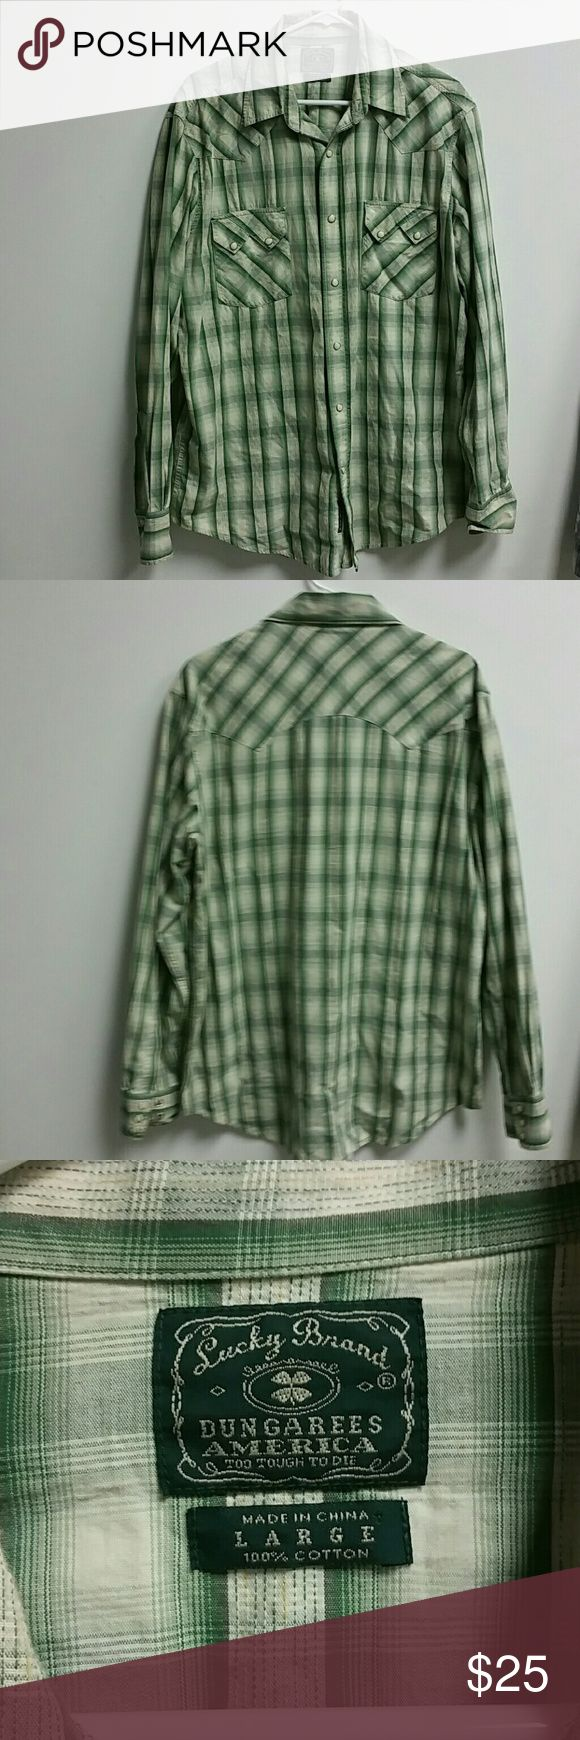 Mens Lucky Brand shirt 100%Cotton snap up shirt. Very good shape only worn a few times. Size Large. Lucky Brand Shirts Casual Button Down Shirts